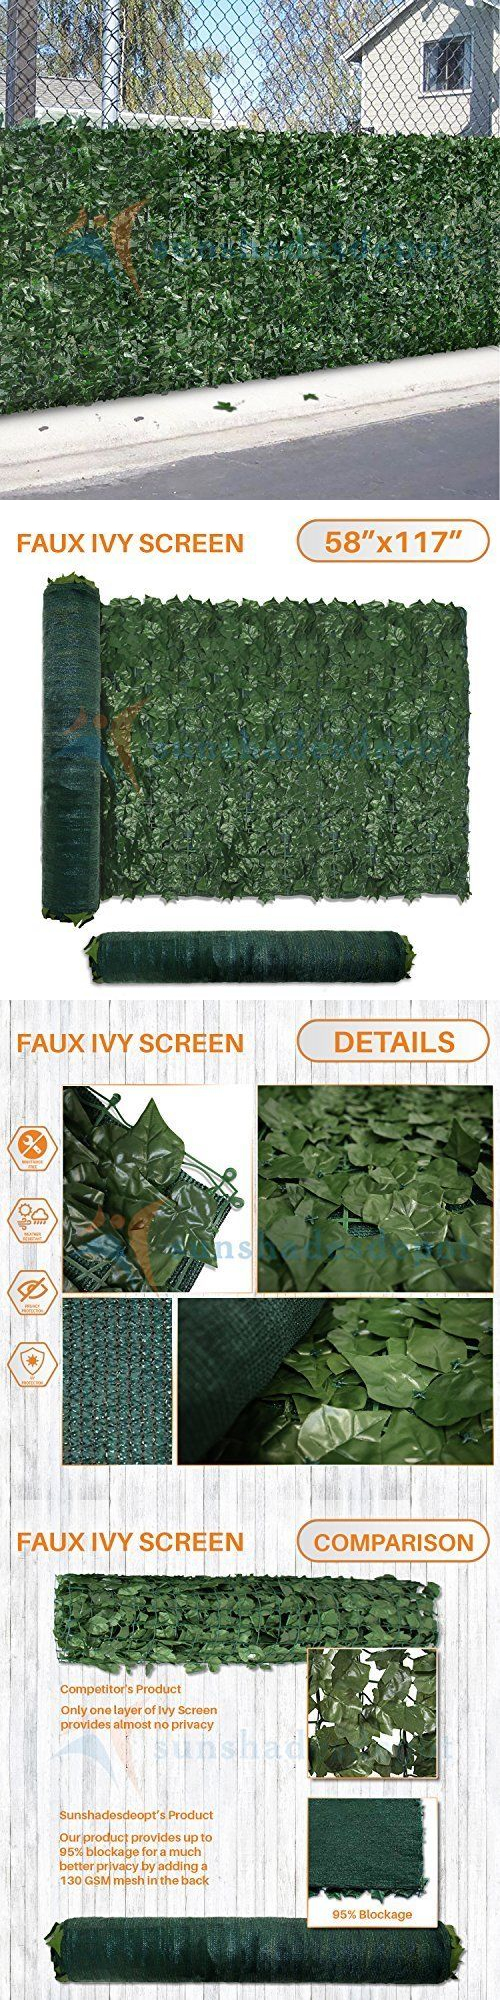 Privacy screen for chain link fence ebay - Privacy Screens Windscreens 180991 Artificial Leaf Panel Private Fence Realistic Security Xl Screen Yard Home